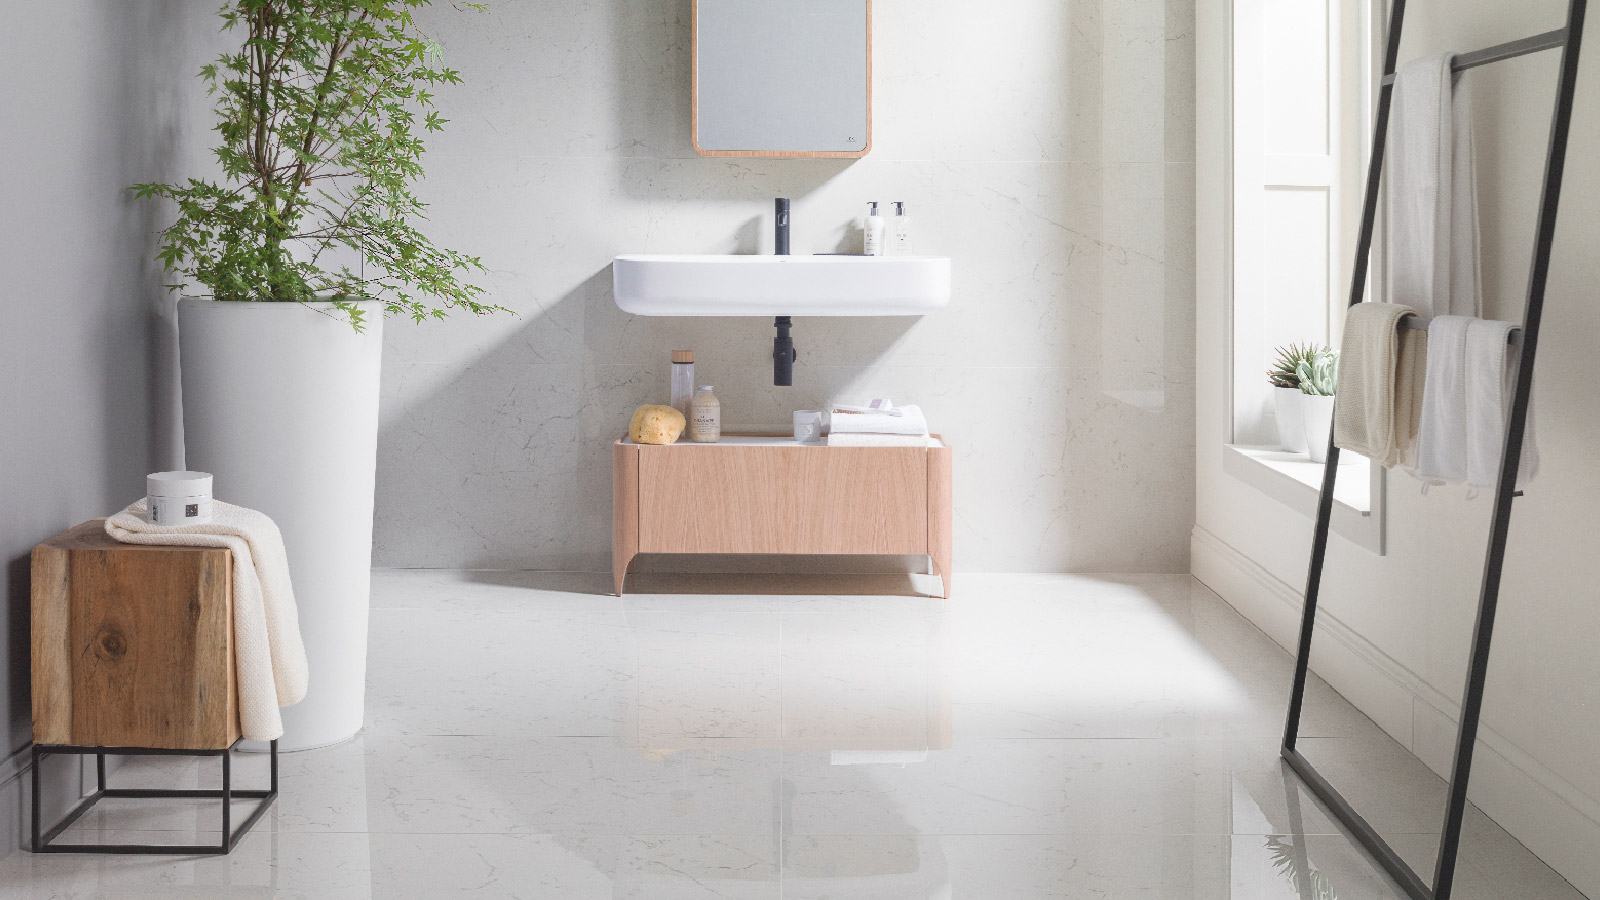 Bianco ceramic tiles, Thassos and Portofino by Porcelanosa are gaining ground in kitchens and bathrooms